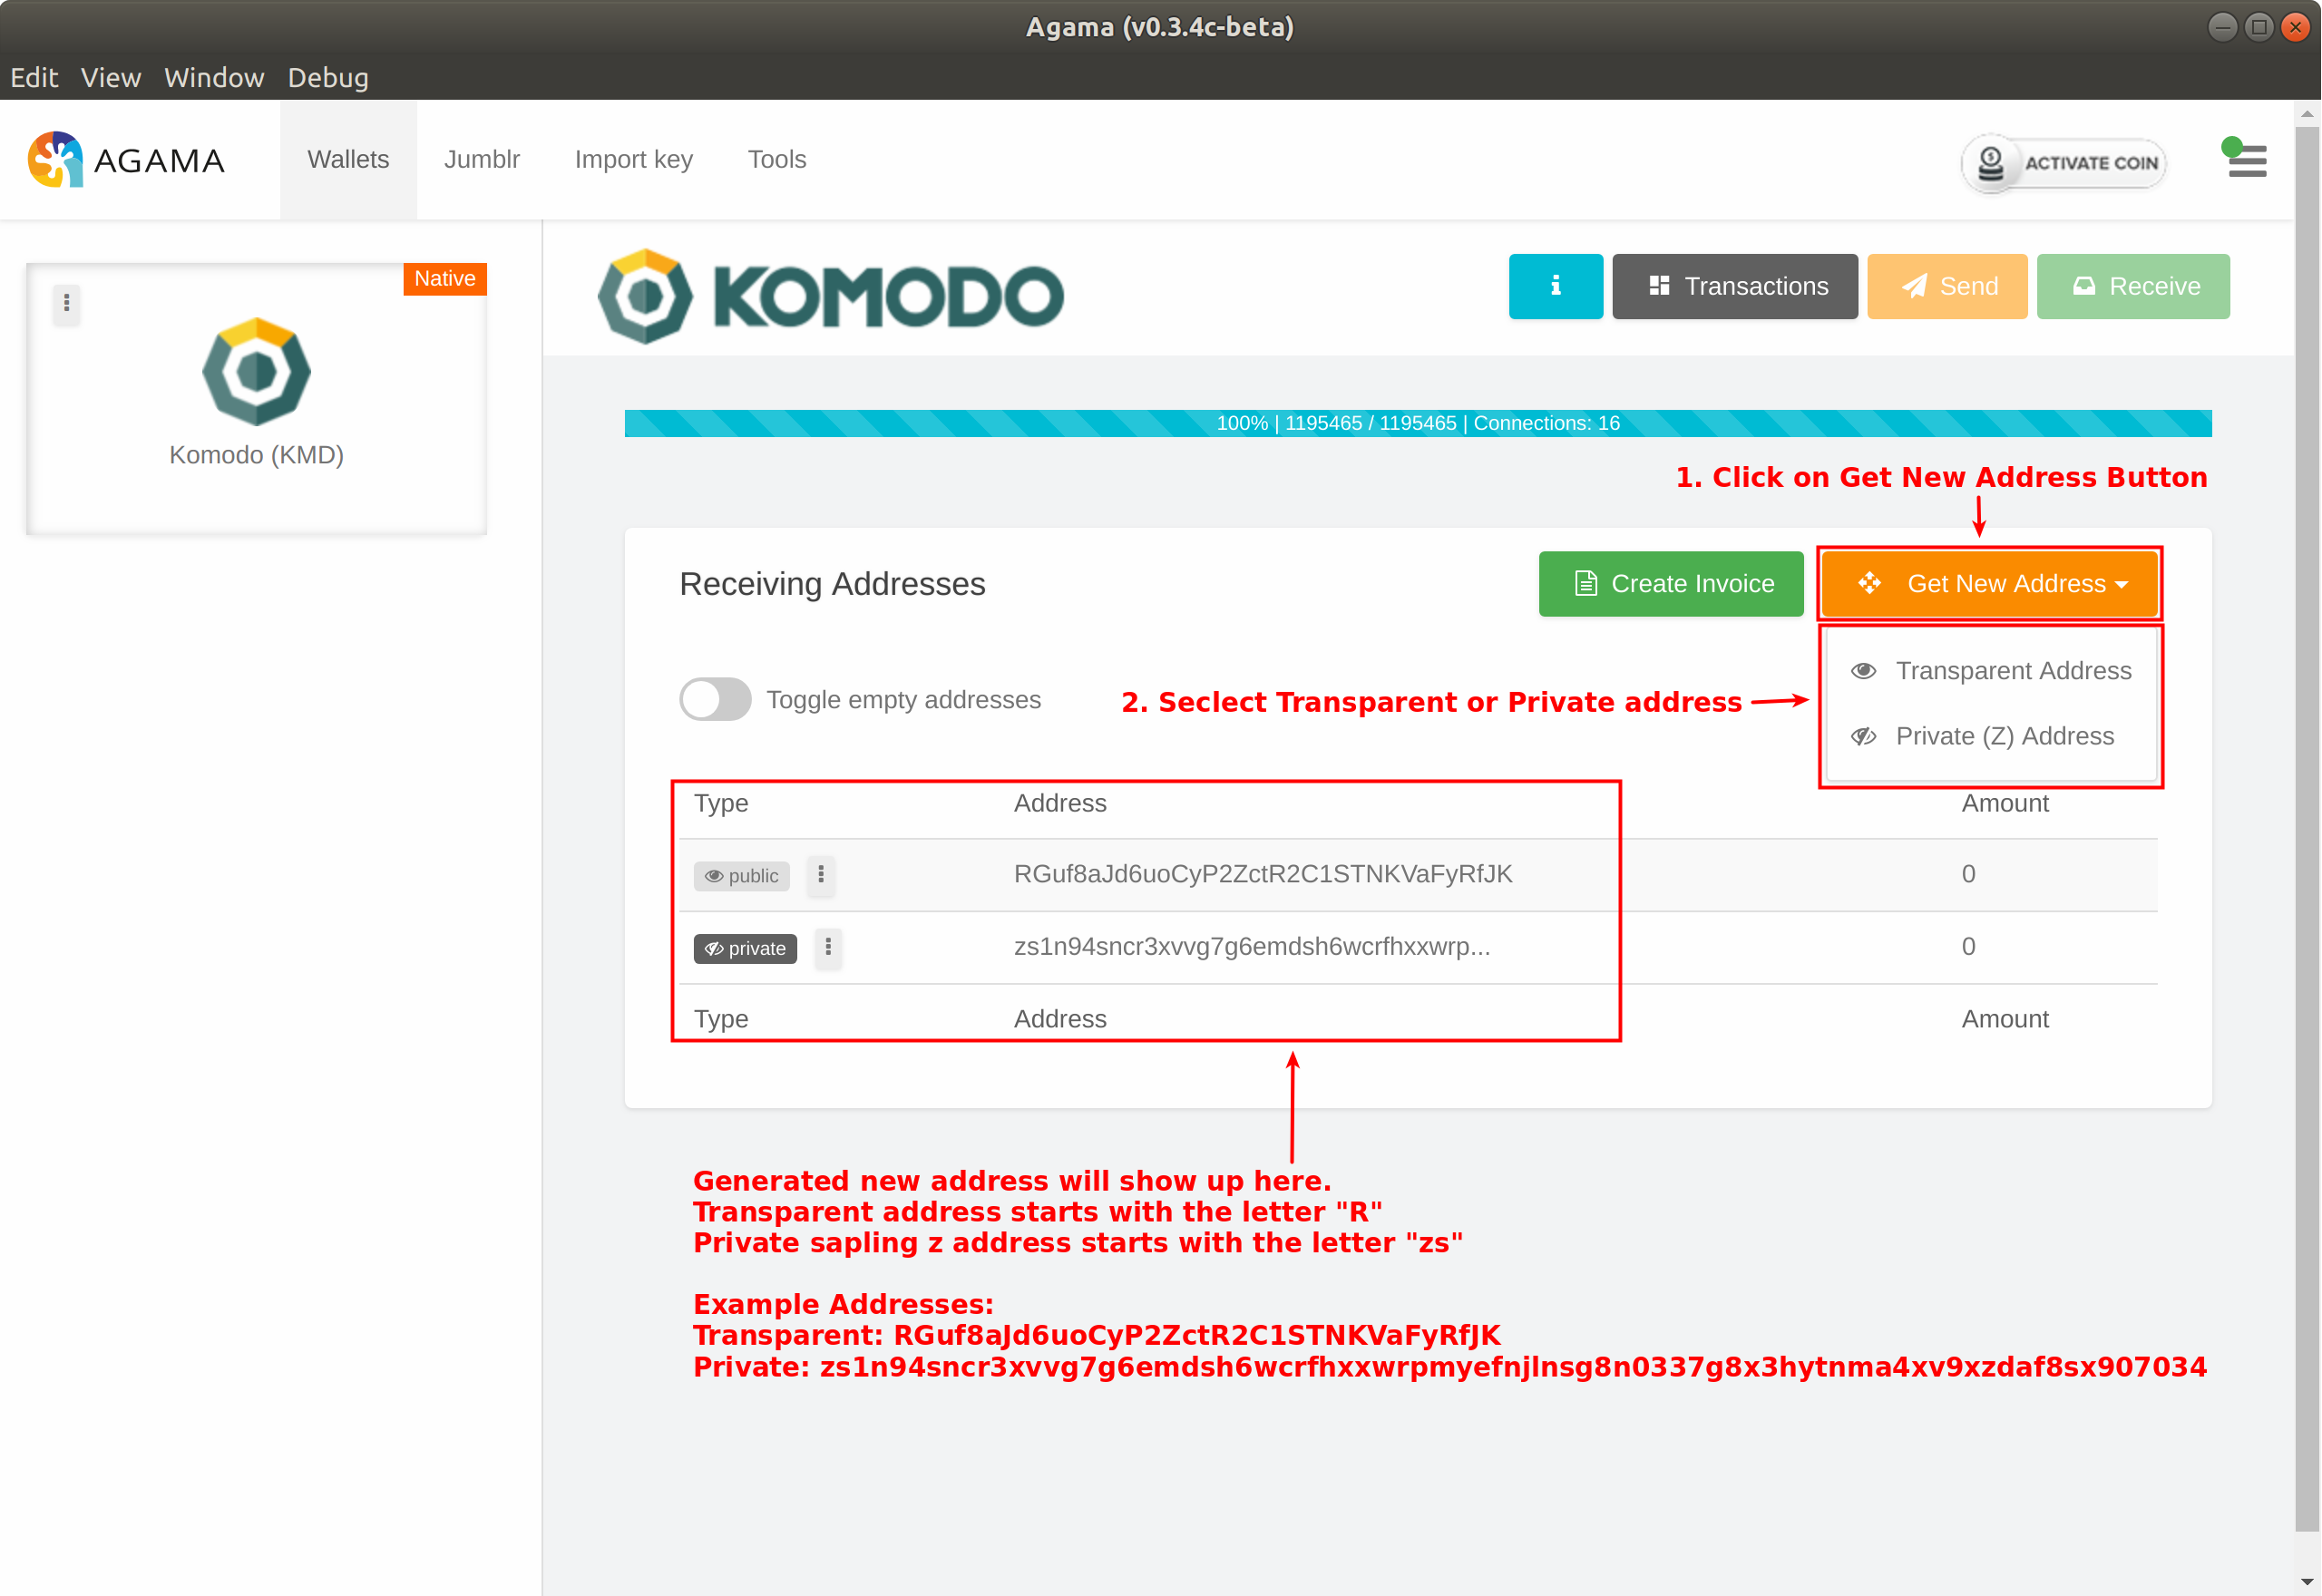 Generate a New Transparent or Private Address and Export Private